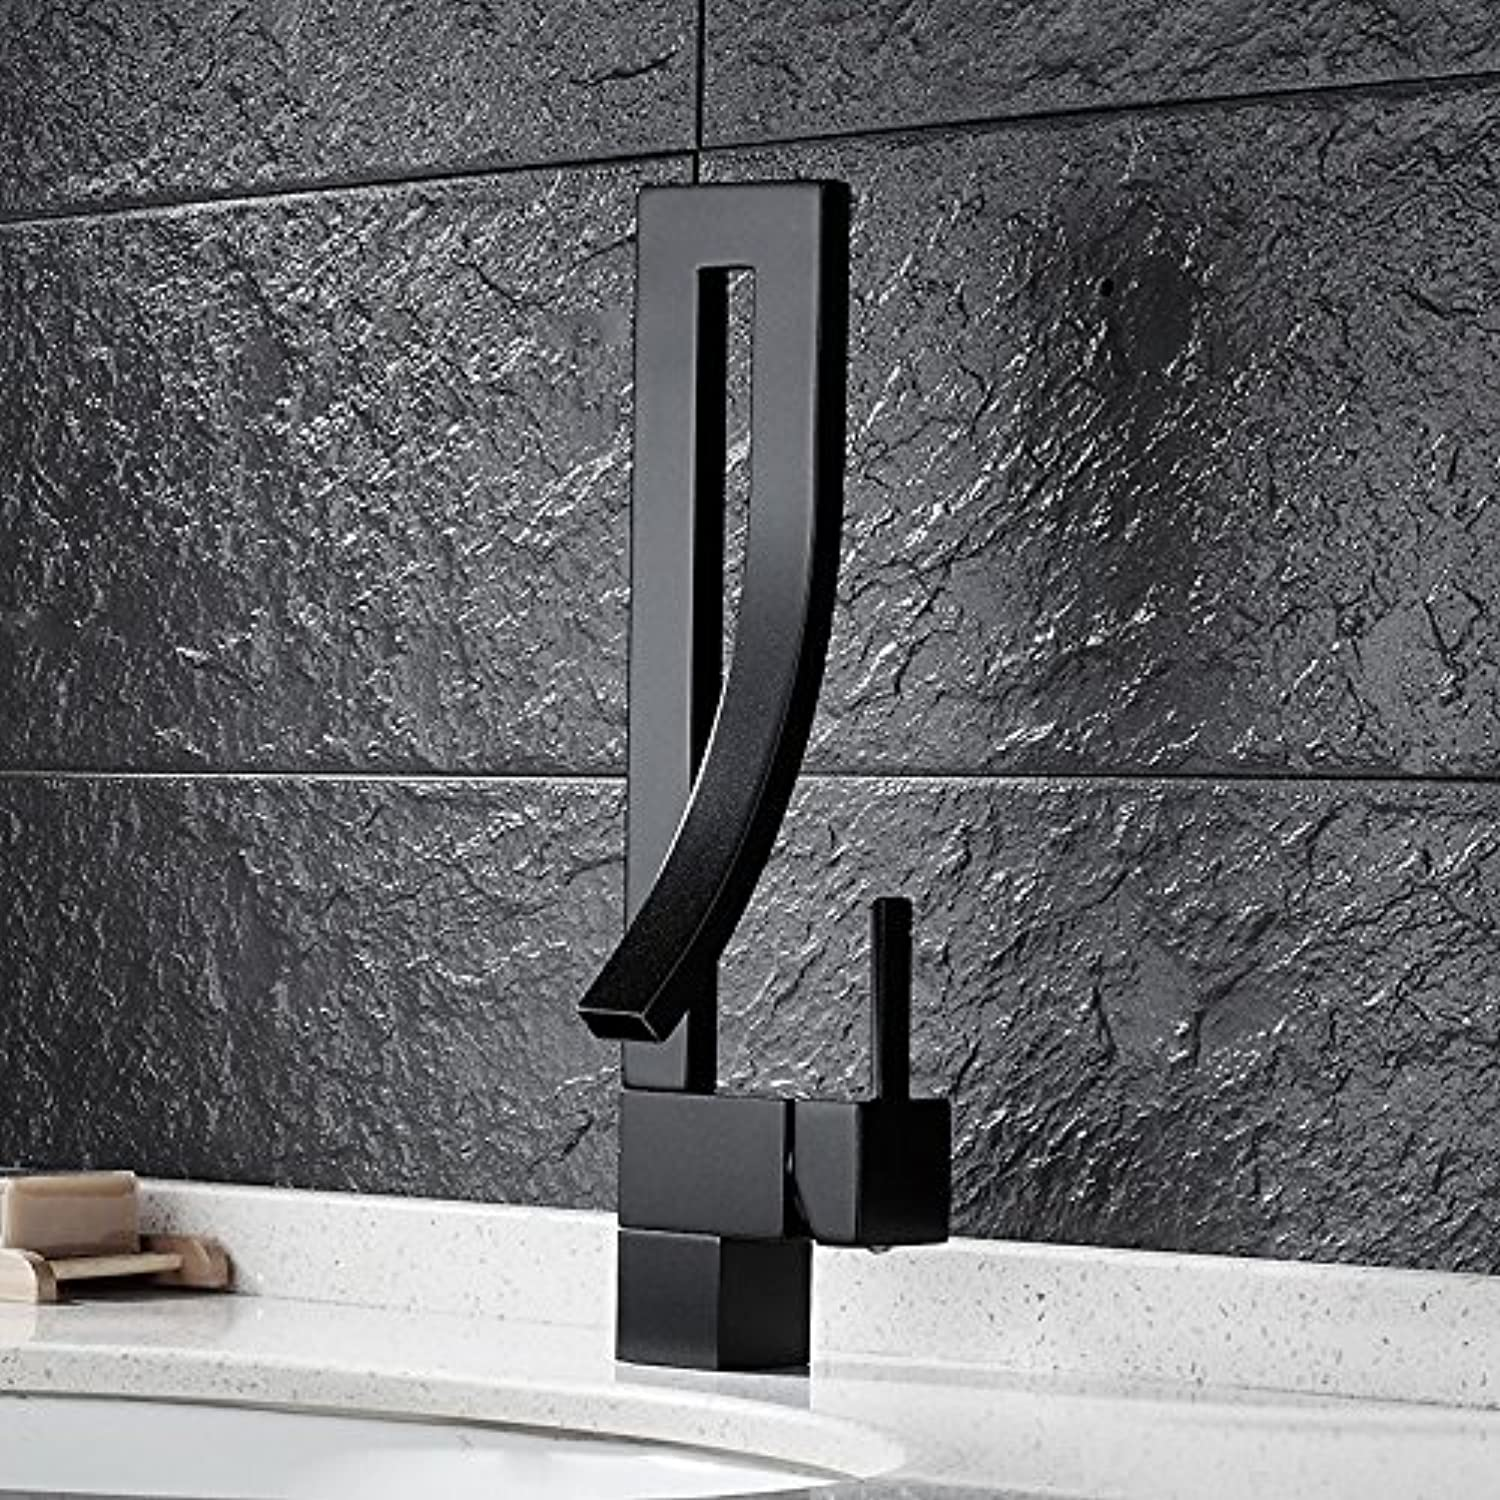 redOOY Faucet Taps Bathroom Faucet Bathroom Faucet Basin Hot And Cold Single Hole Faucet